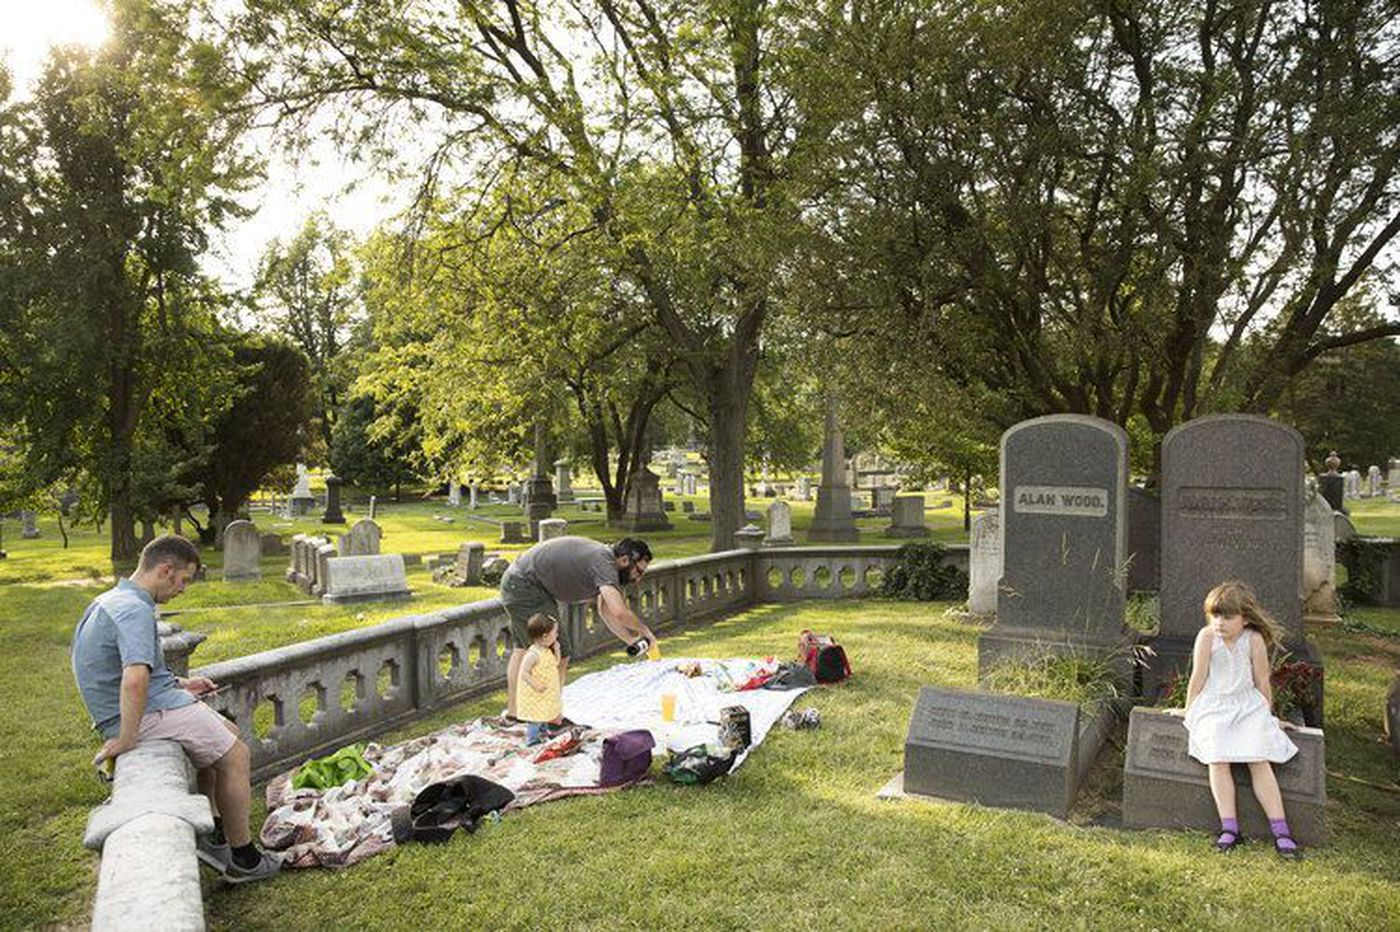 To bring in new blood, historic cemeteries get creative with yoga, dog walks, and picnics